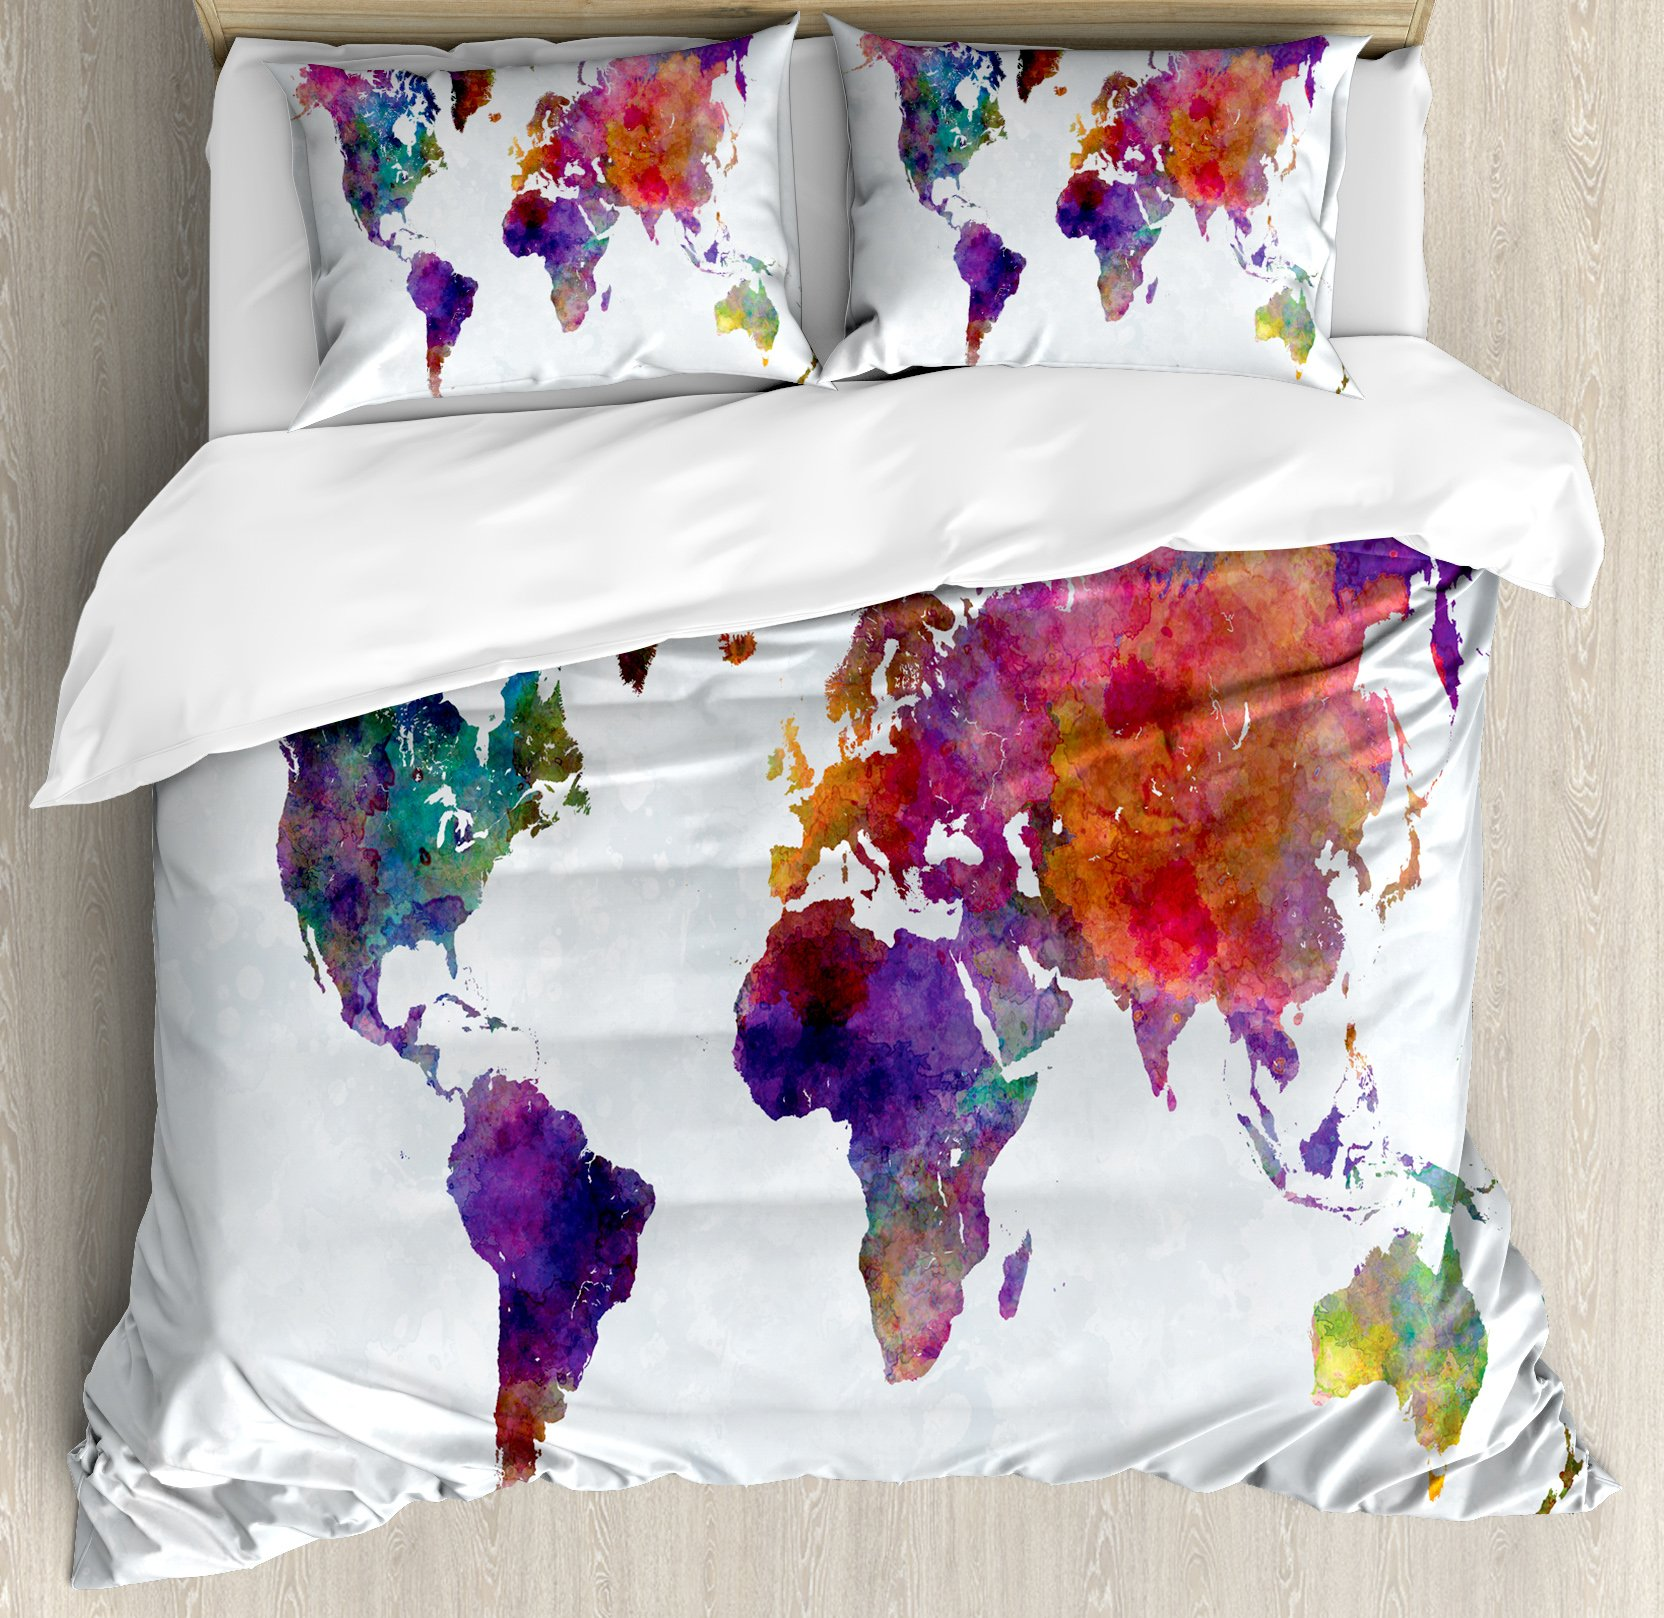 Watercolor Duvet Cover Set Queen Size by Ambesonne, Multicolored Hand Drawn World Map Asia Europe Africa America Geography Print, Decorative 3 Piece Bedding Set with 2 Pillow Shams, Multicolor